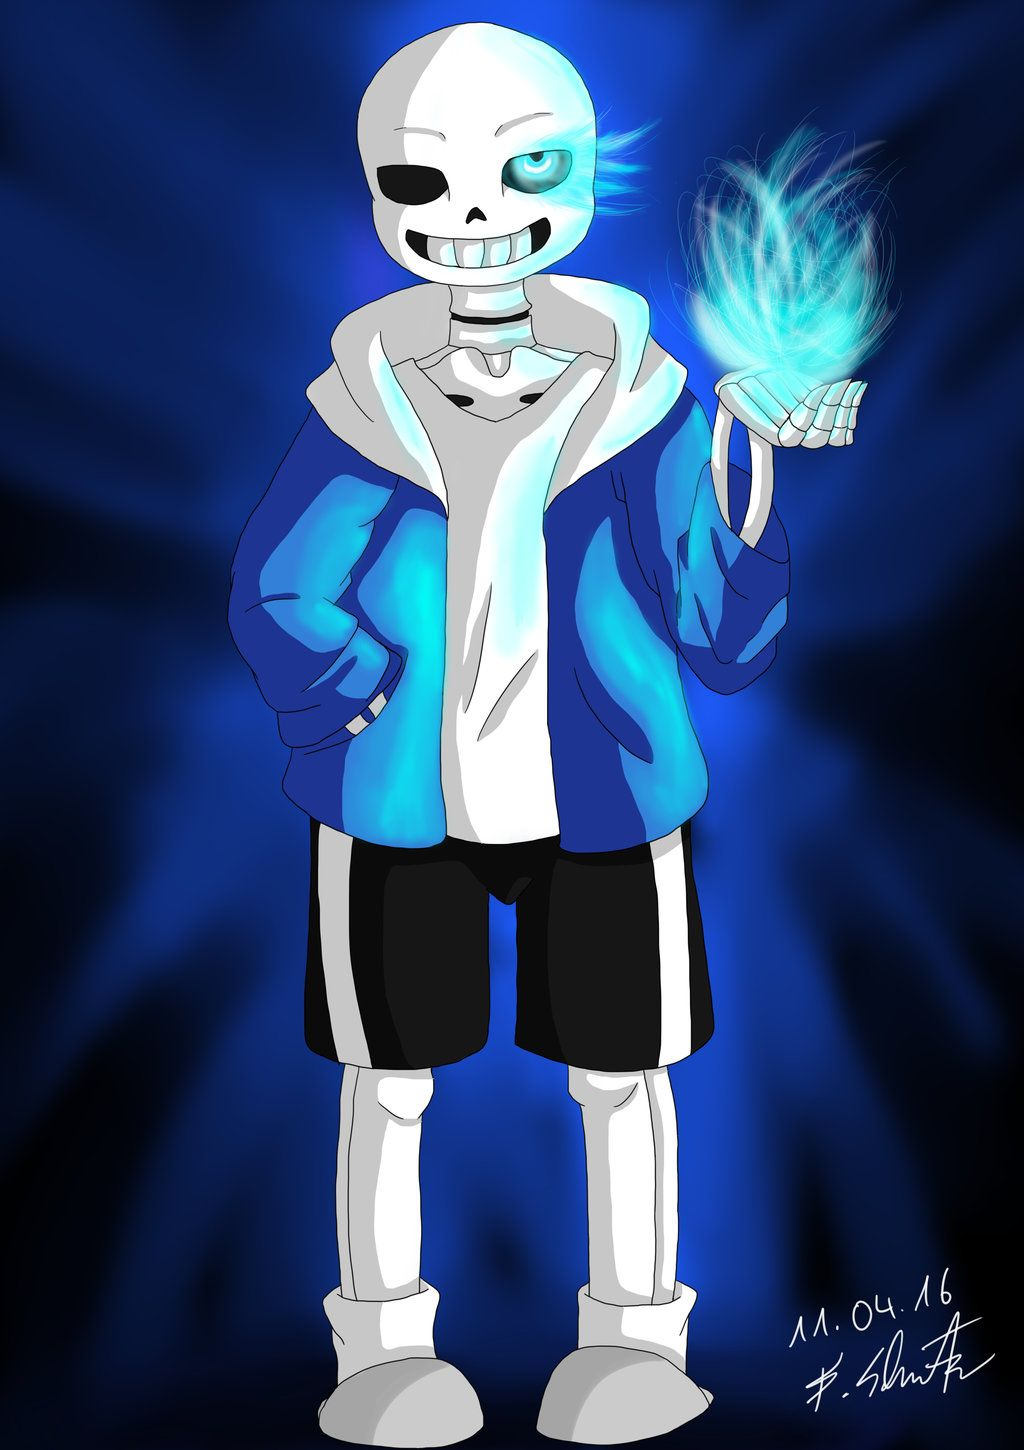 Undertale Sans The Skeleton By Snilaze On DeviantArt Undertale - Skeletons favourite childhood cartoon characters